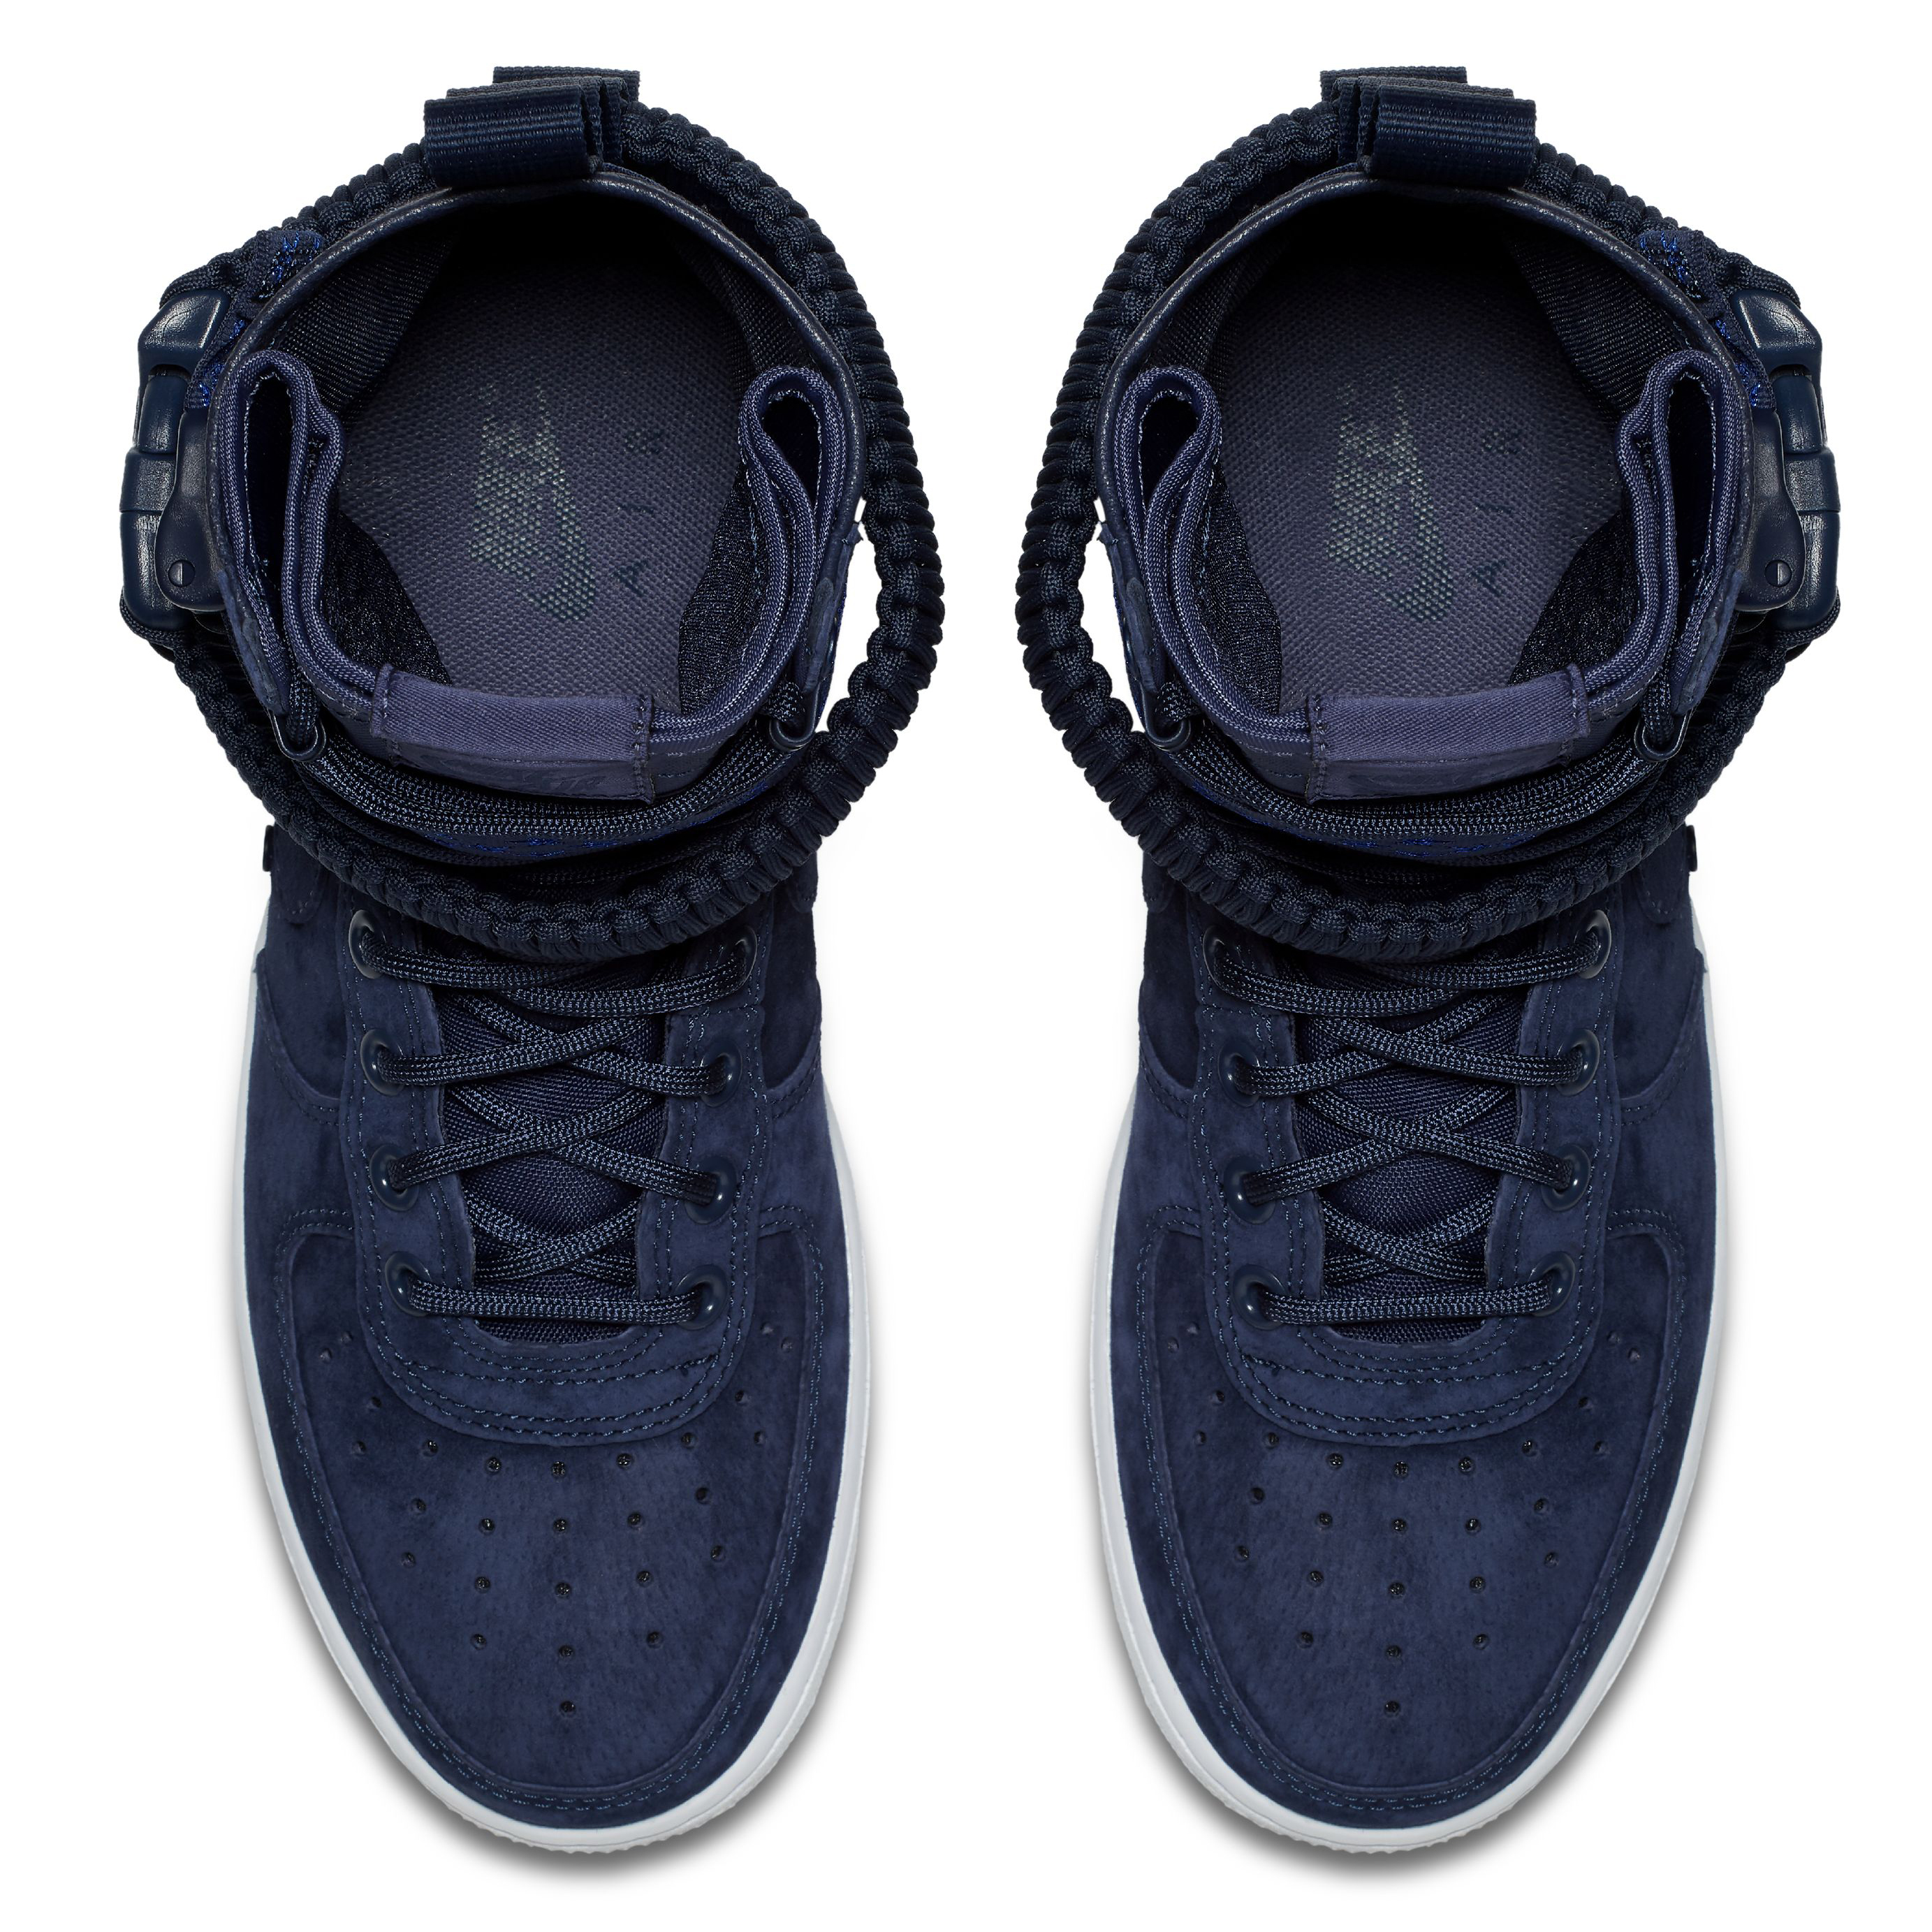 9ed7920b Женские кроссовки Nike SF Air Force 1 Midnight Navy/Midnight Navy-White -  фото